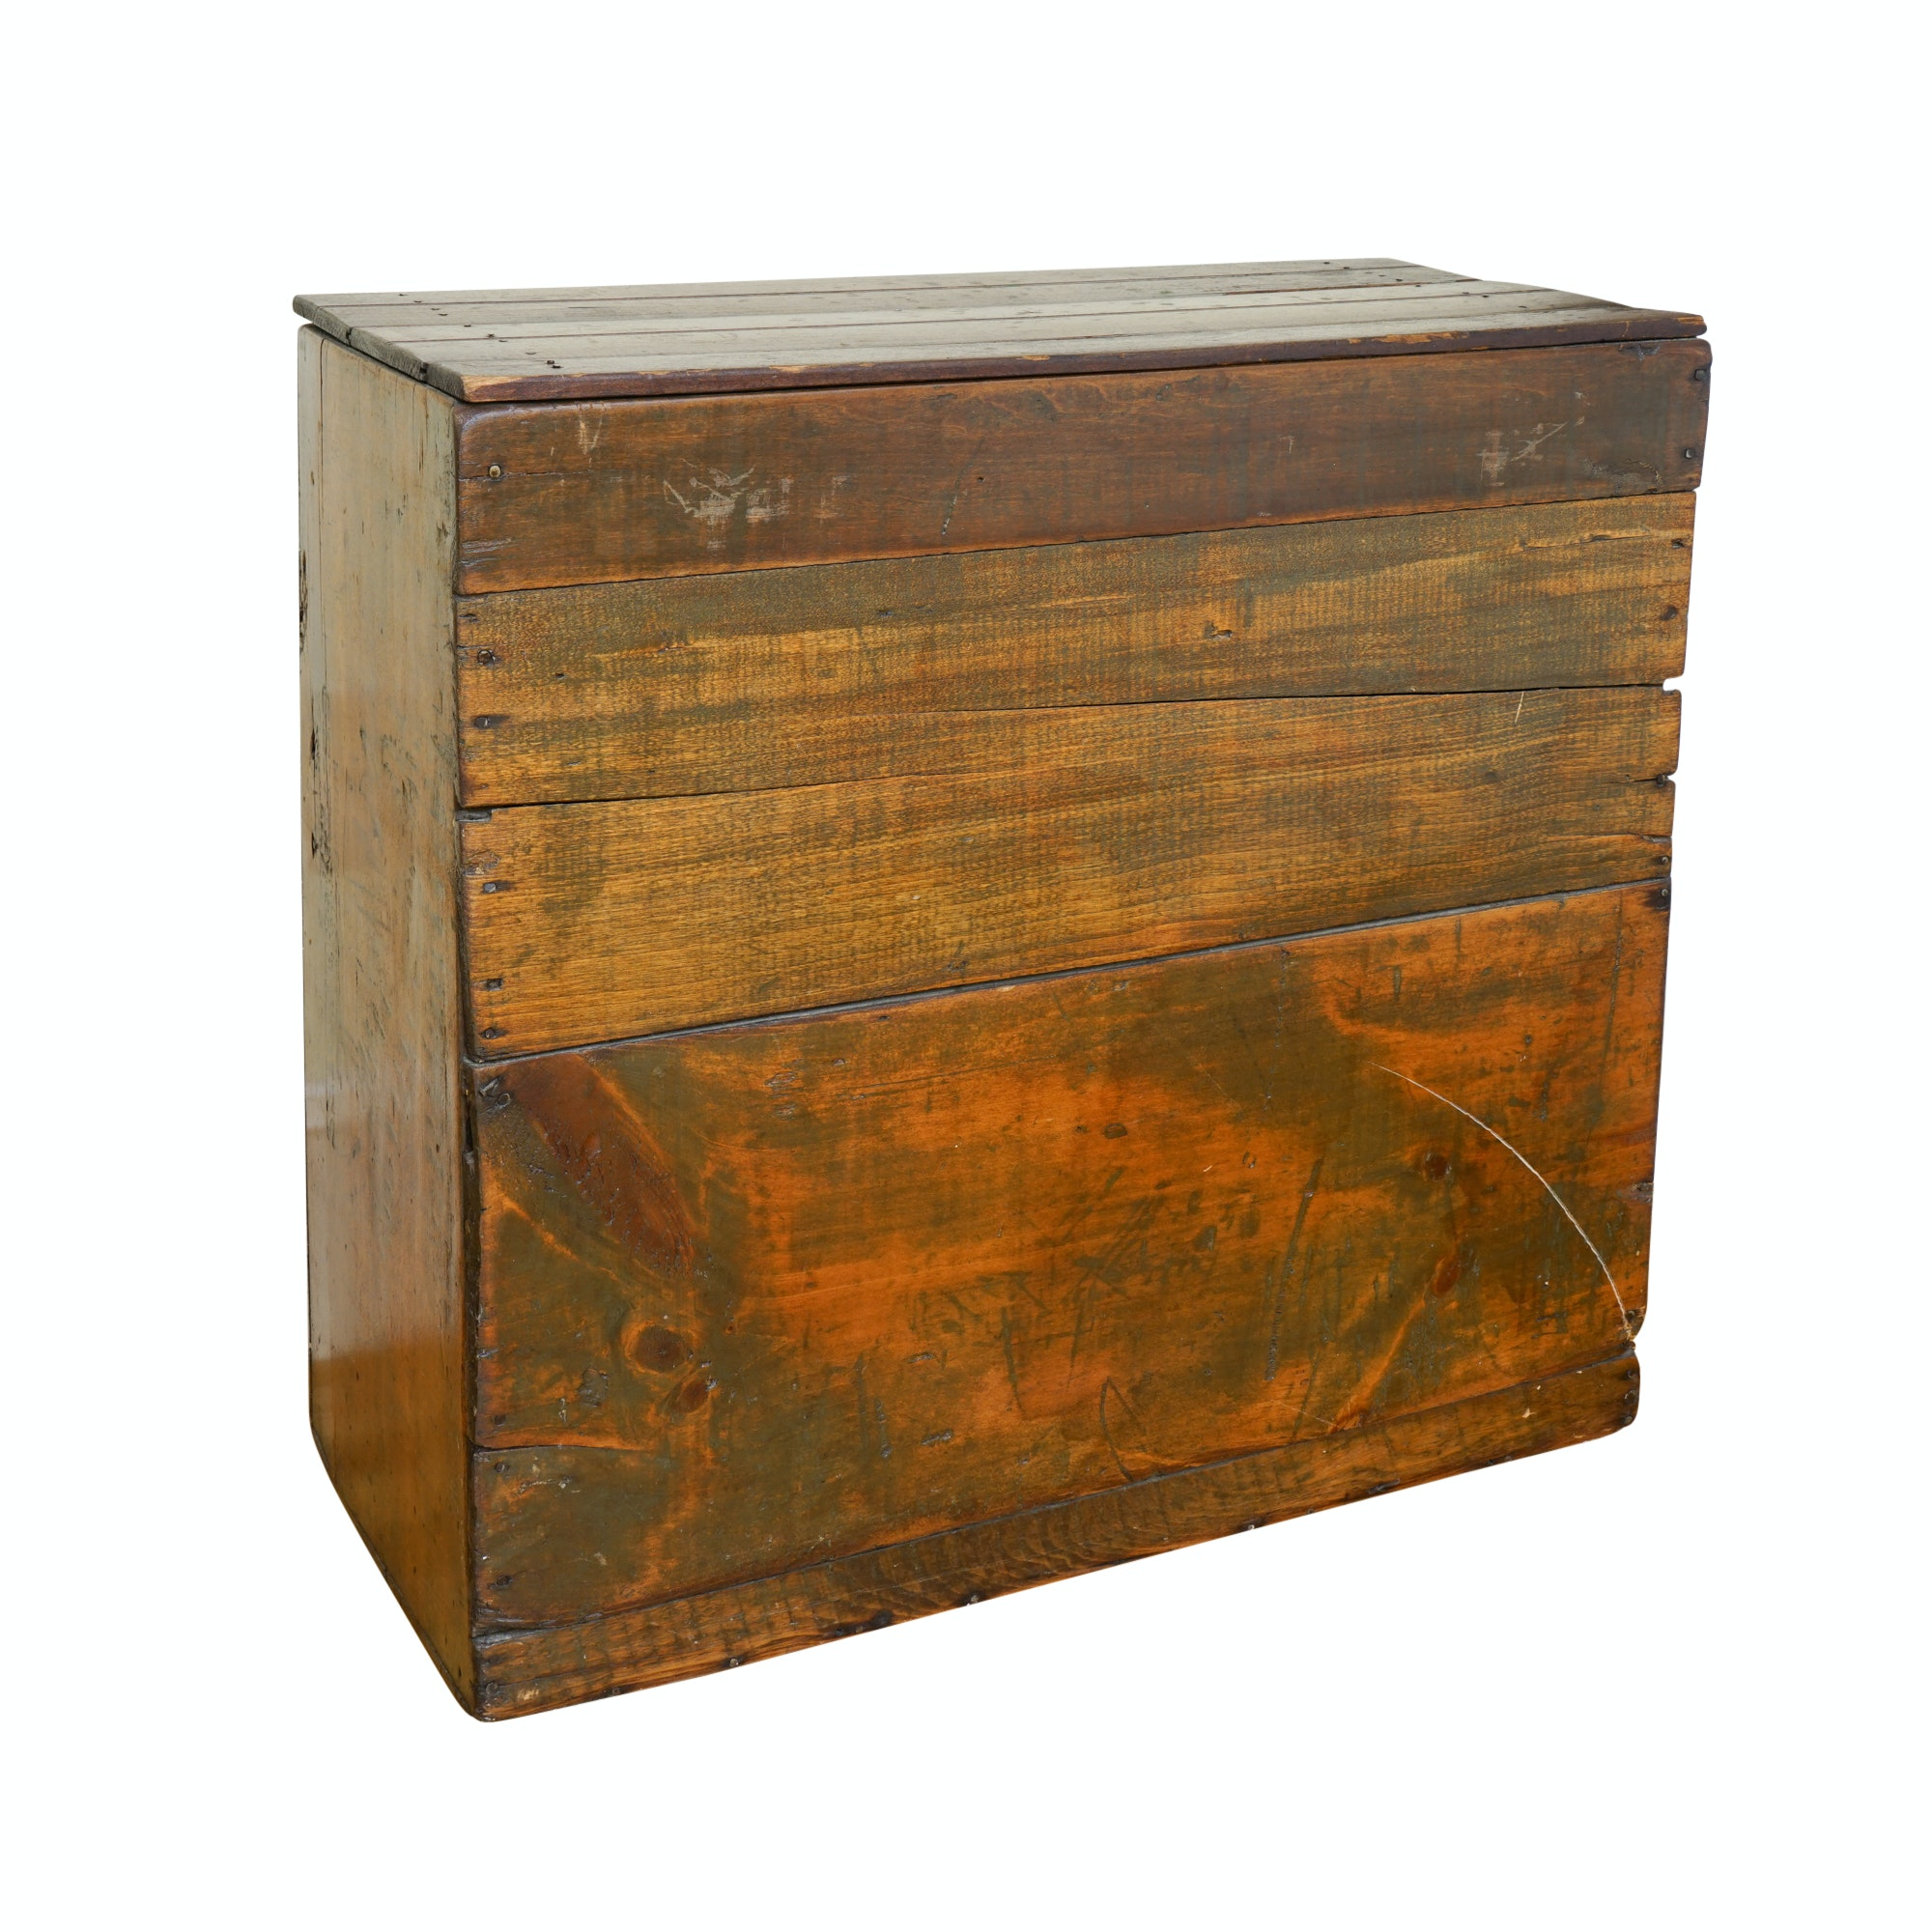 Antique Shoe Shipping Crate